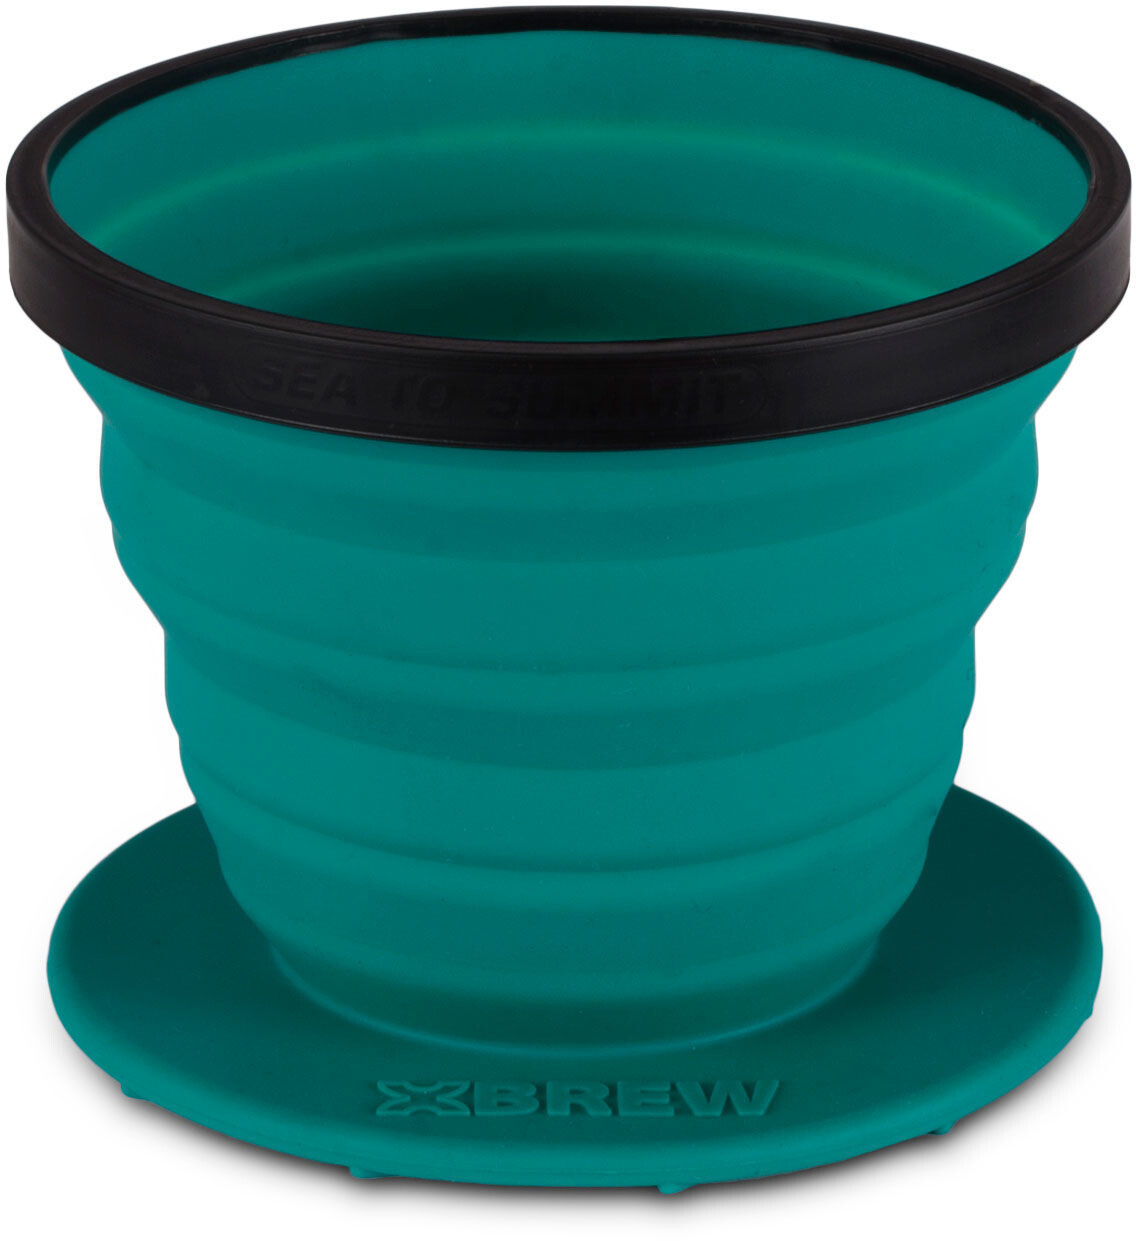 BLUE Sea To Summit Large X-Plate Camping Outdoor Eating Food Container